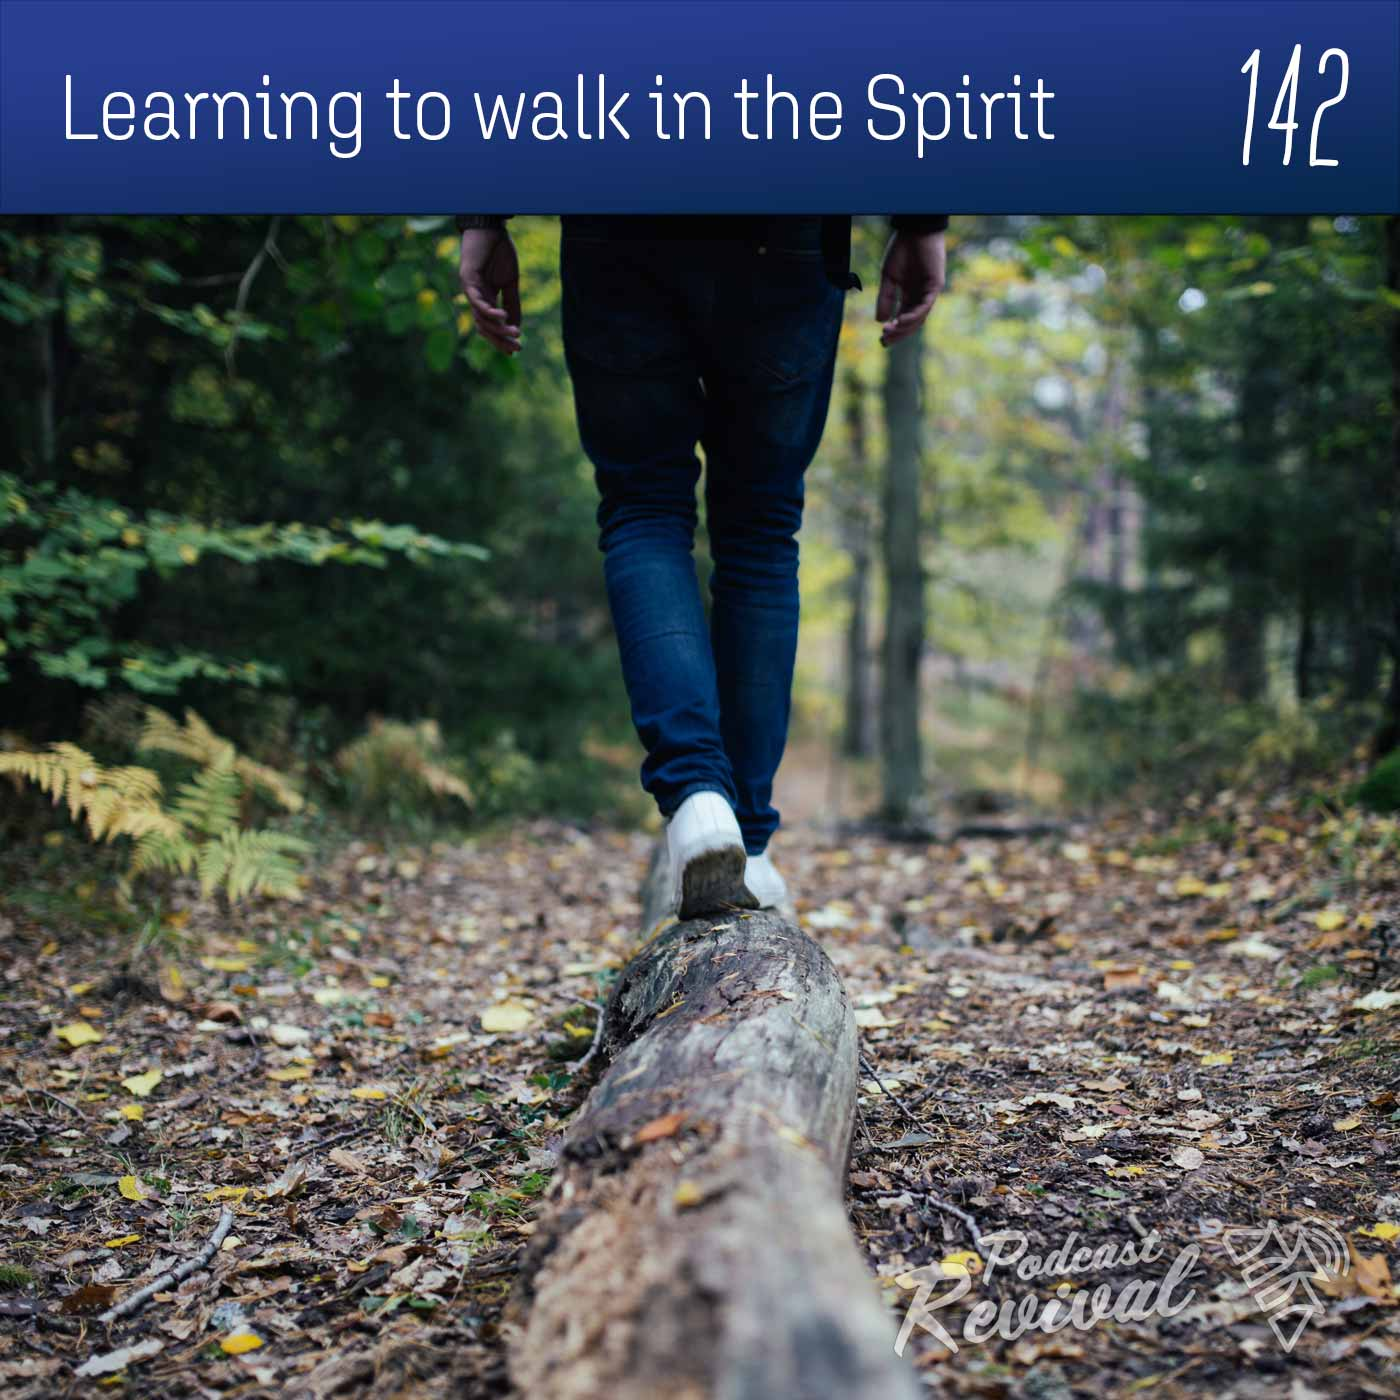 Learning to walk in the Spirit